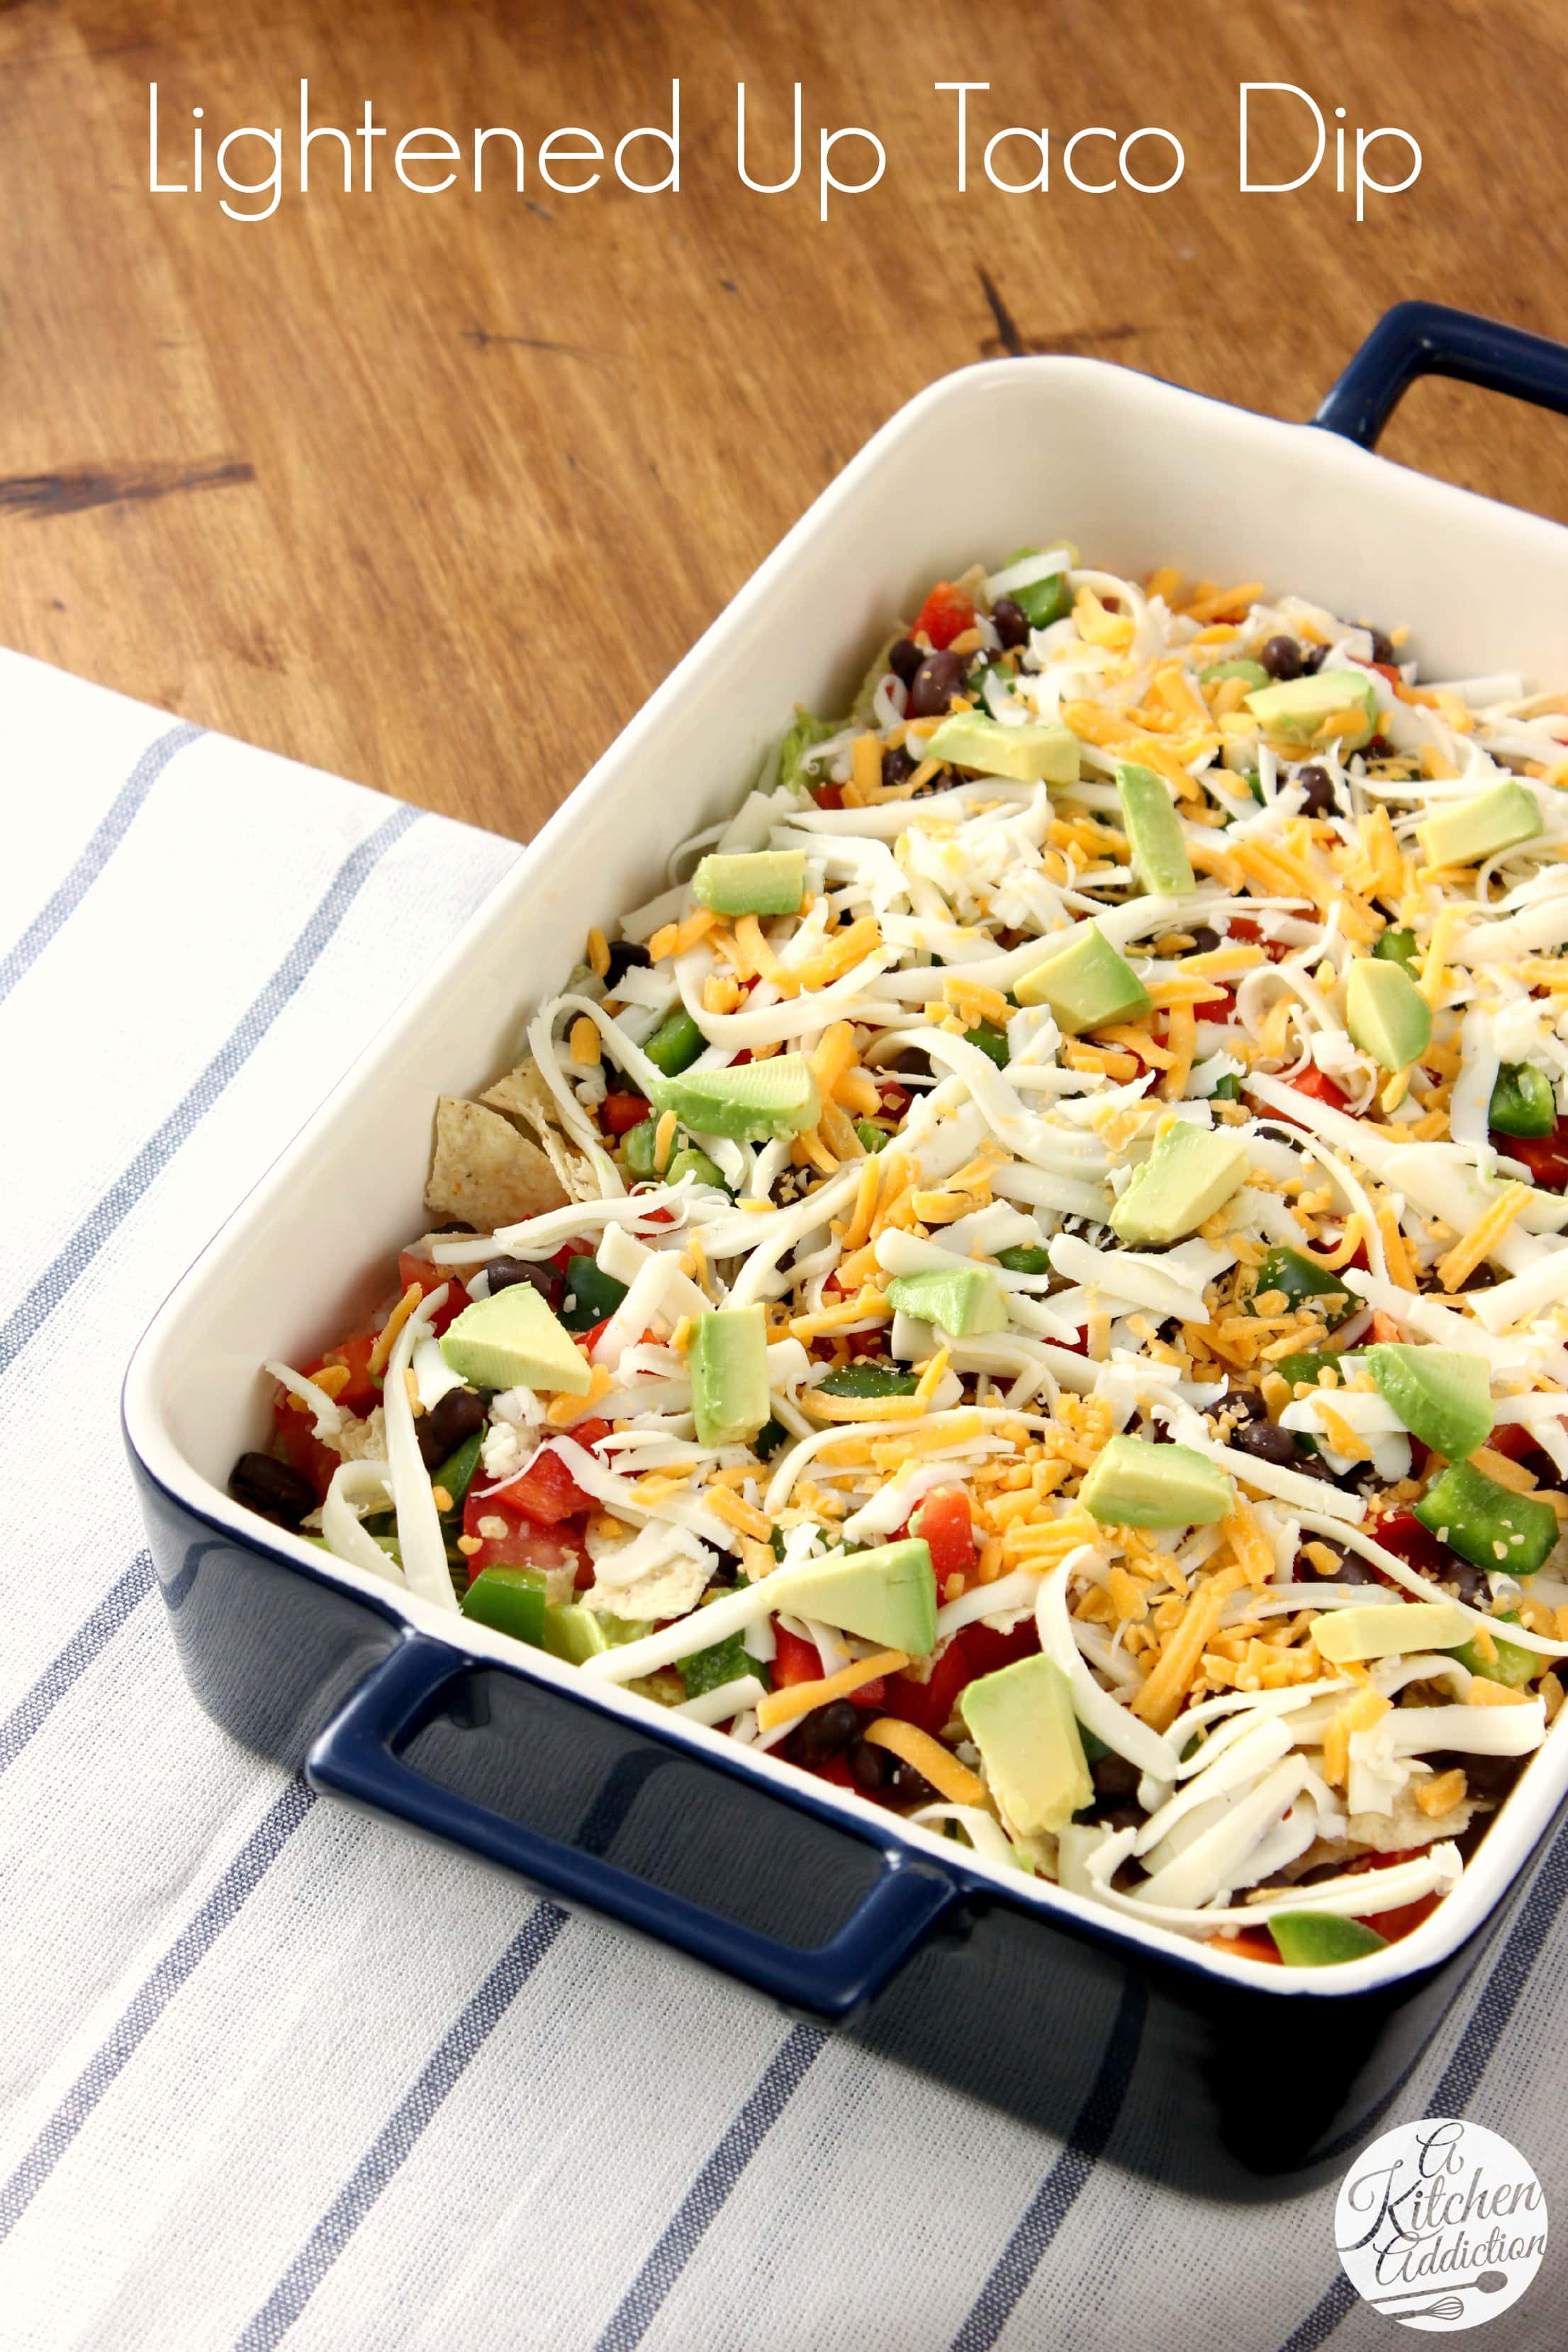 Lightened up taco dip a kitchen addiction for A kitchen addiction